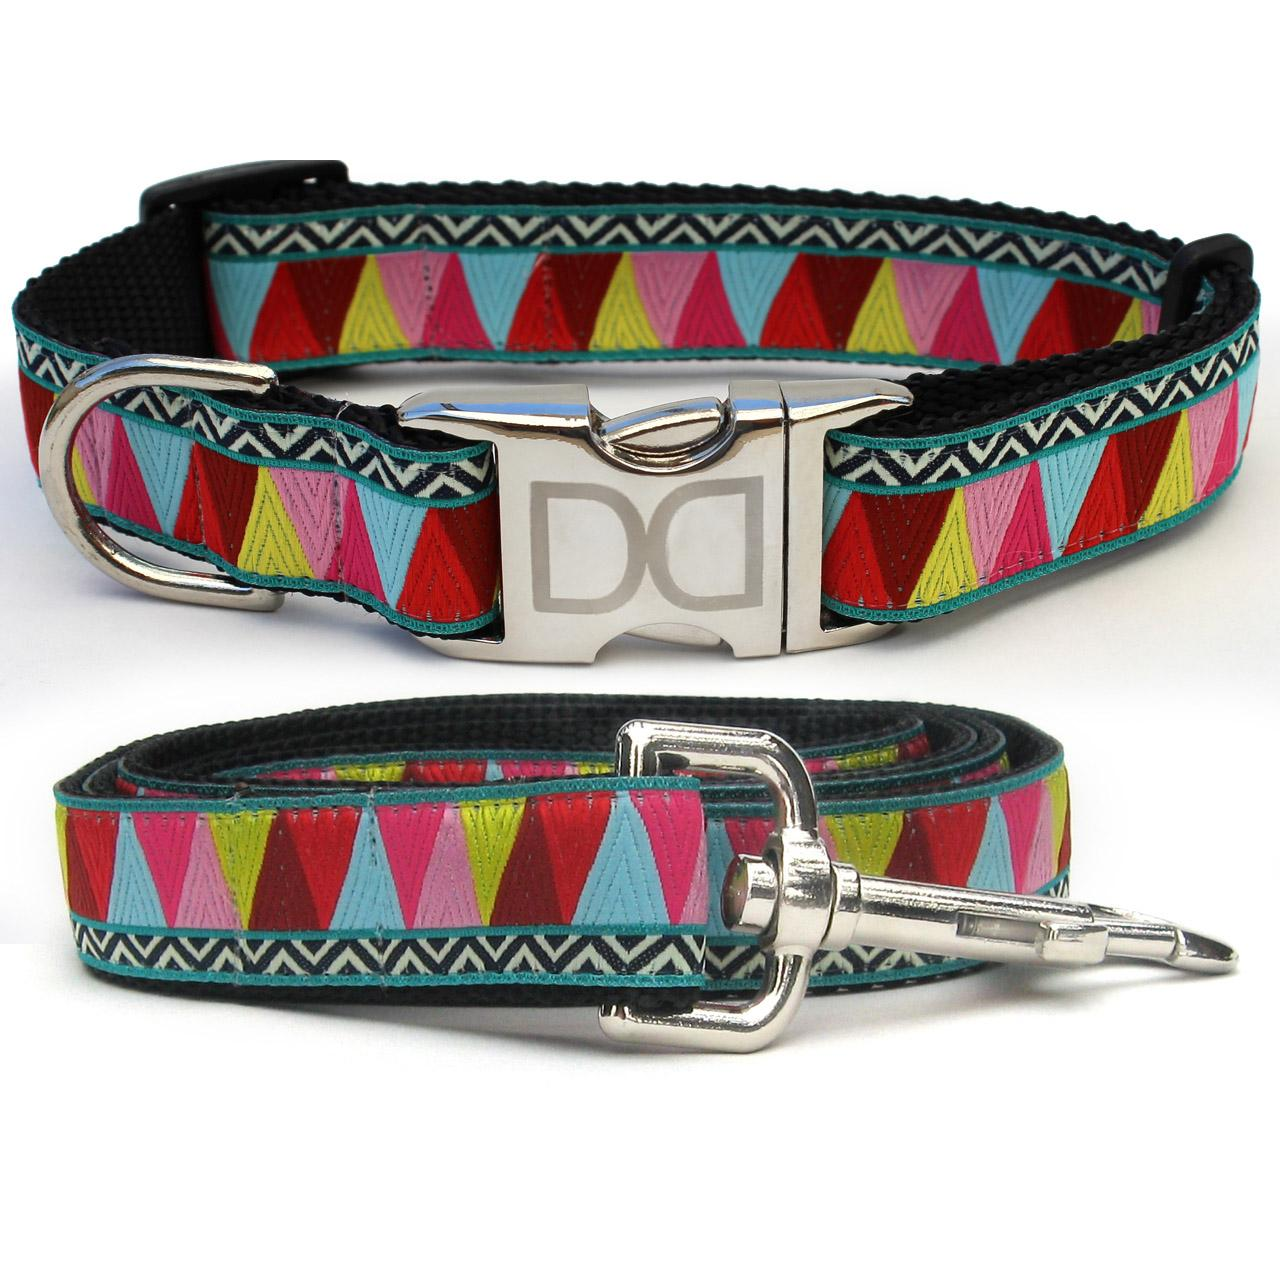 Santa Fe Dog Collar and Leash Set by Diva Dog